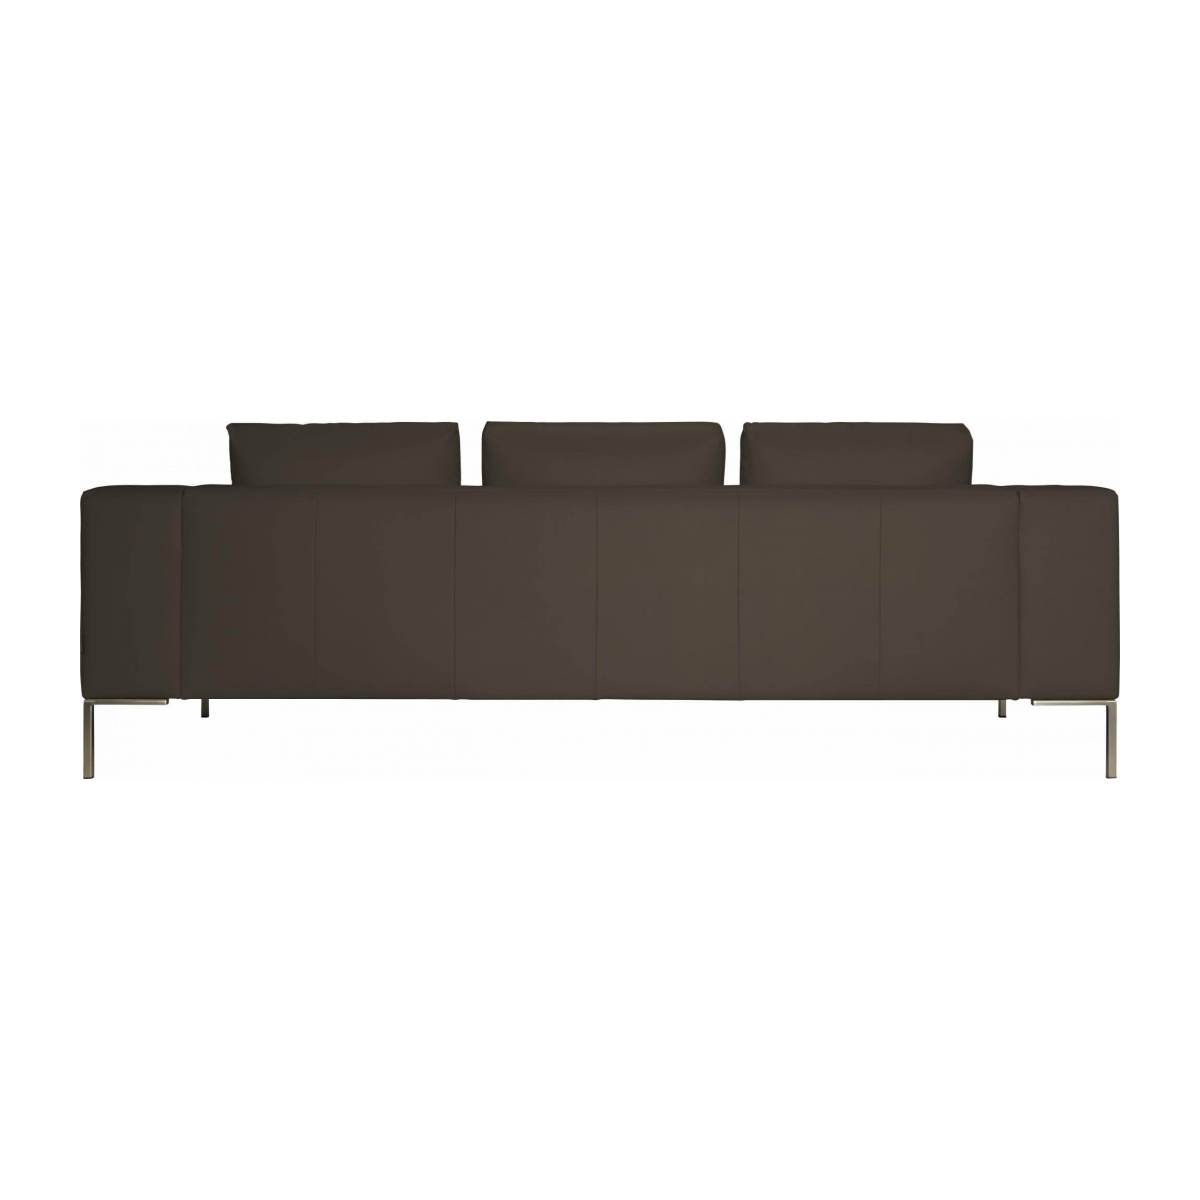 3 seater sofa in Eton veined leather, stone n°4